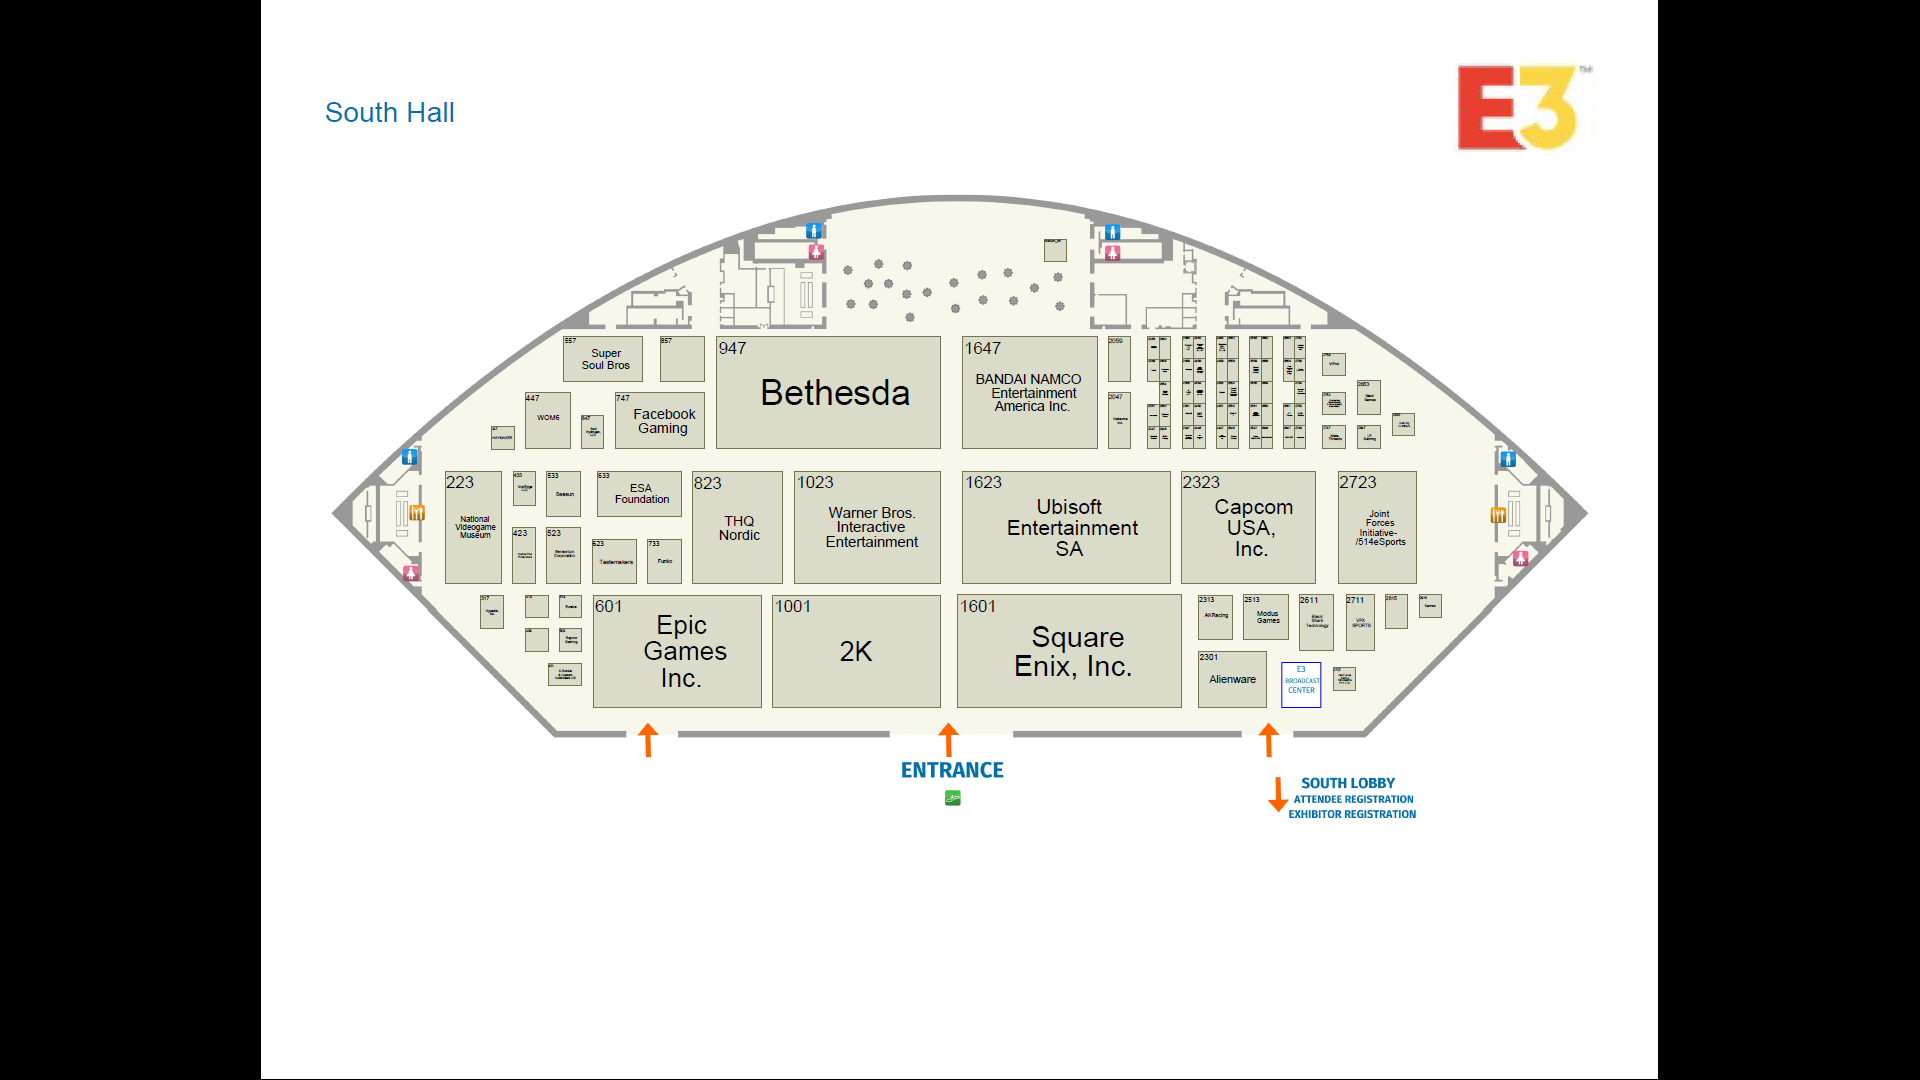 E3 2019 Floor Plans are now available